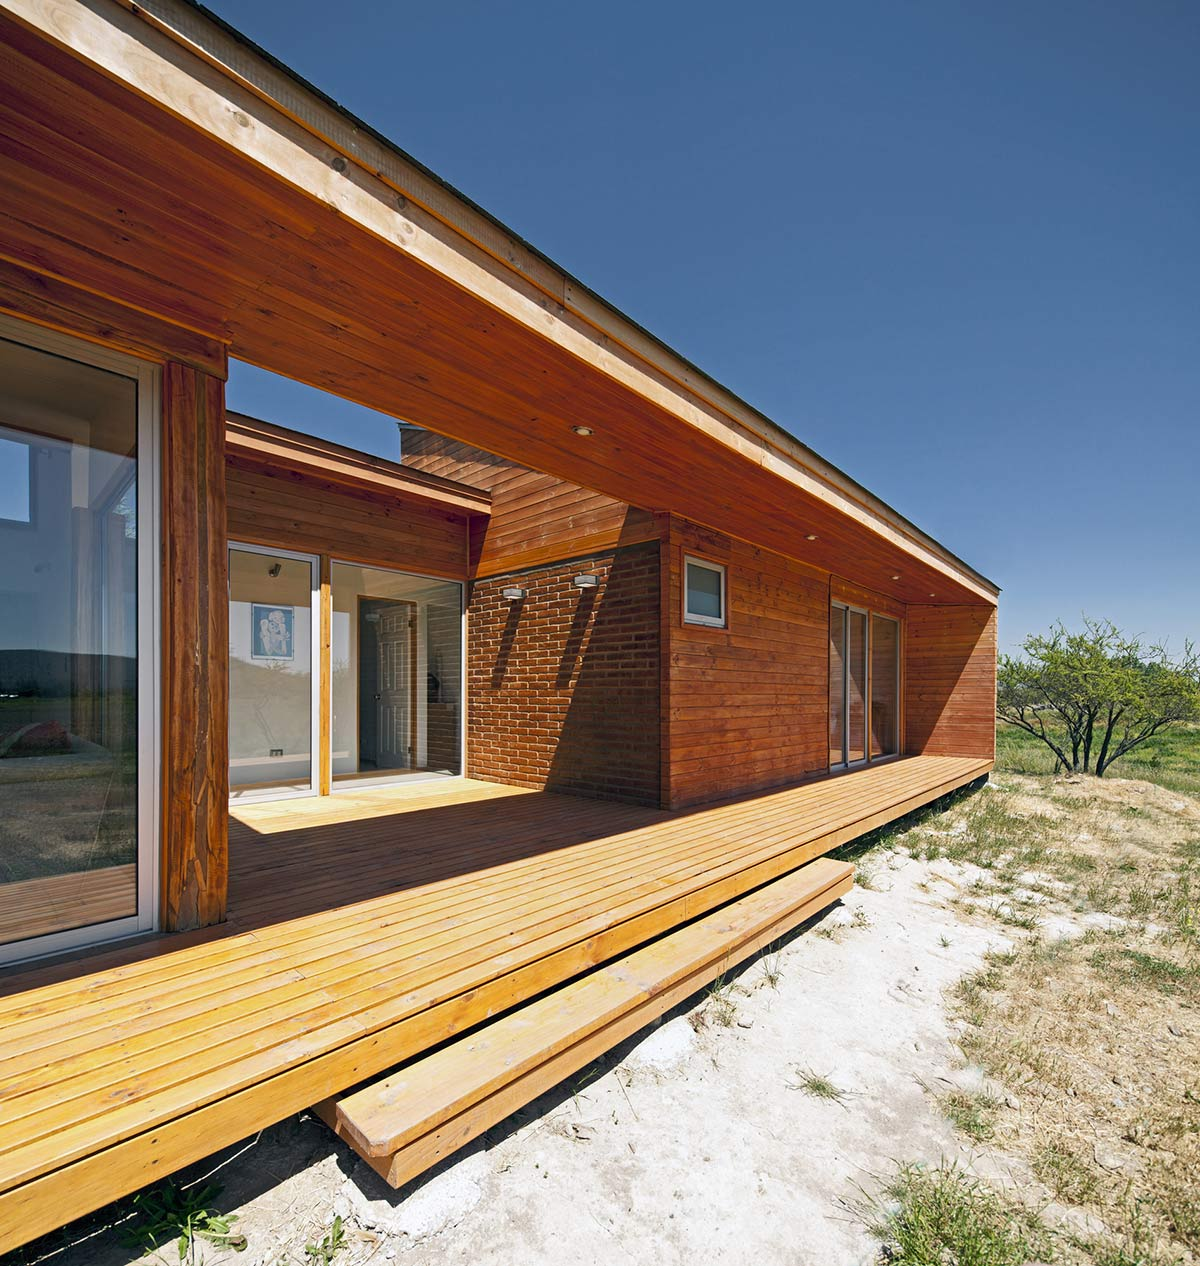 Patio Doors, Deck, Home in Chile with Japanese Influences